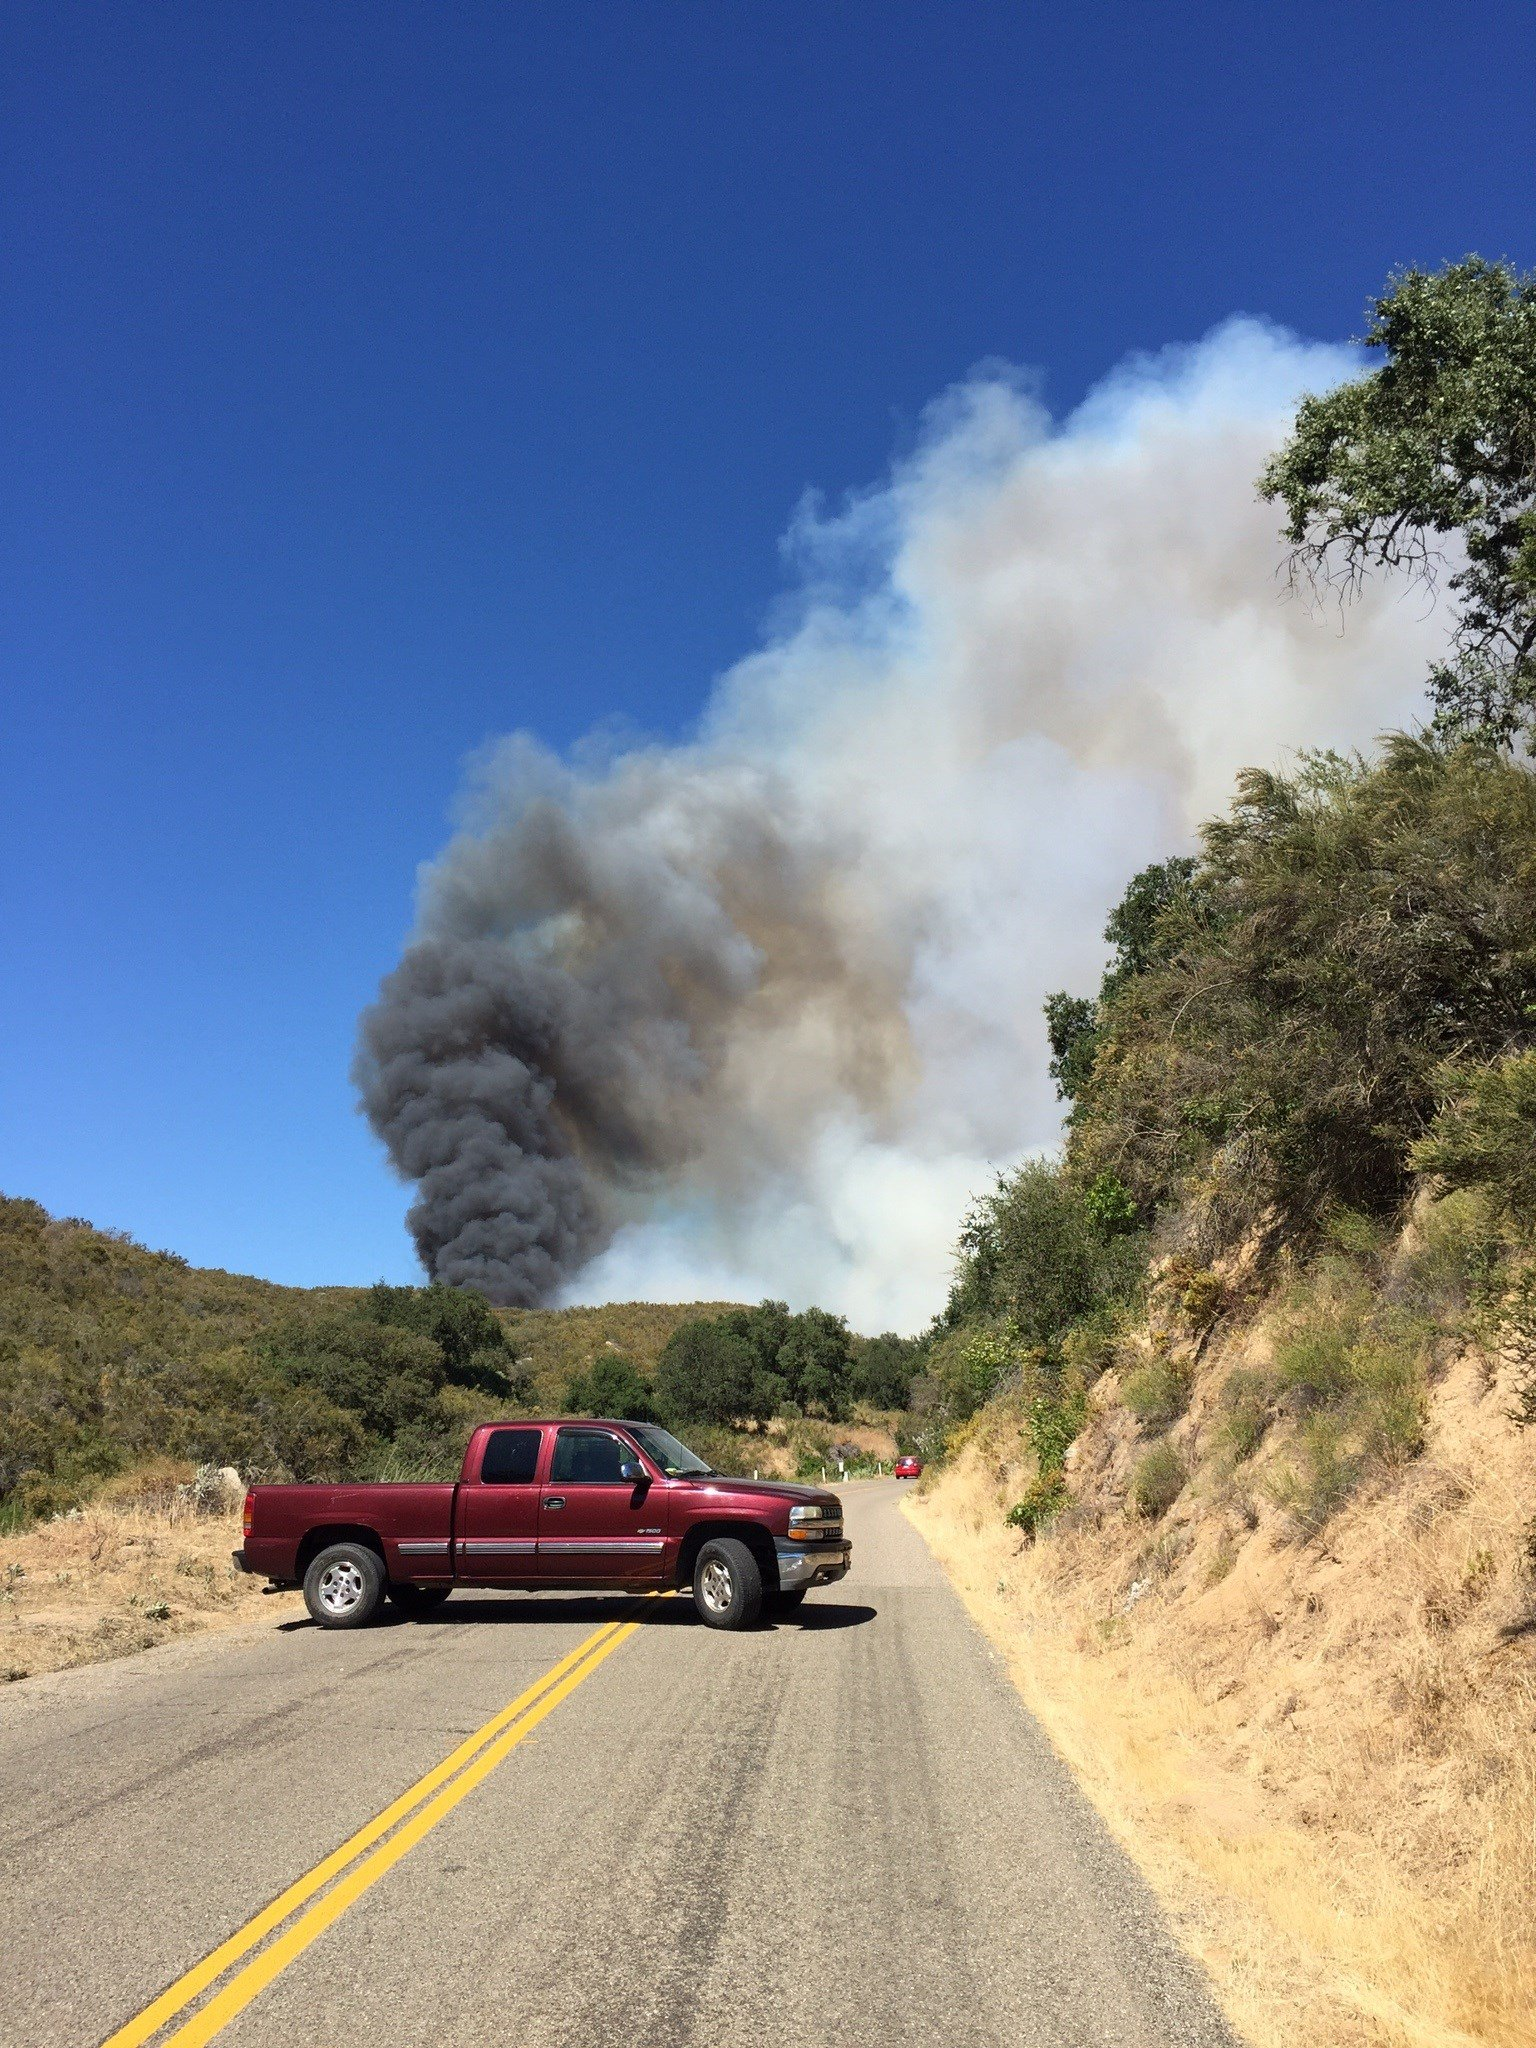 Parkhill Road is closed to traffic because of the fire. (KSBY photo)